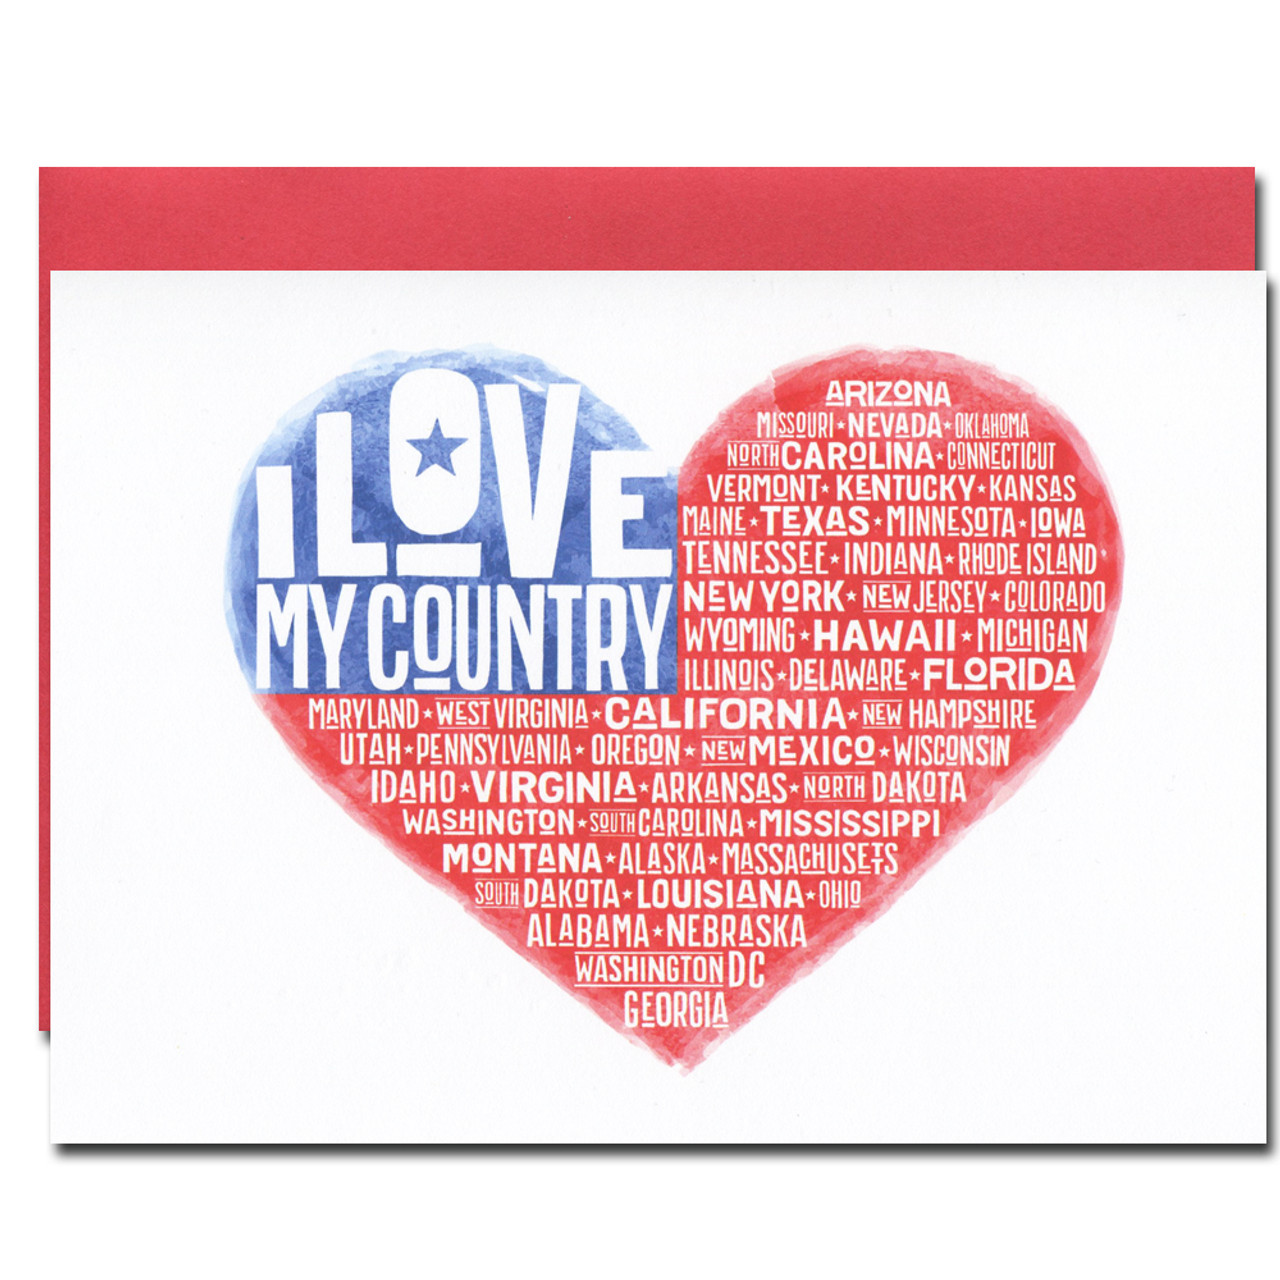 July 4th - I Love My Country has a red, white and blue design with all 50 states